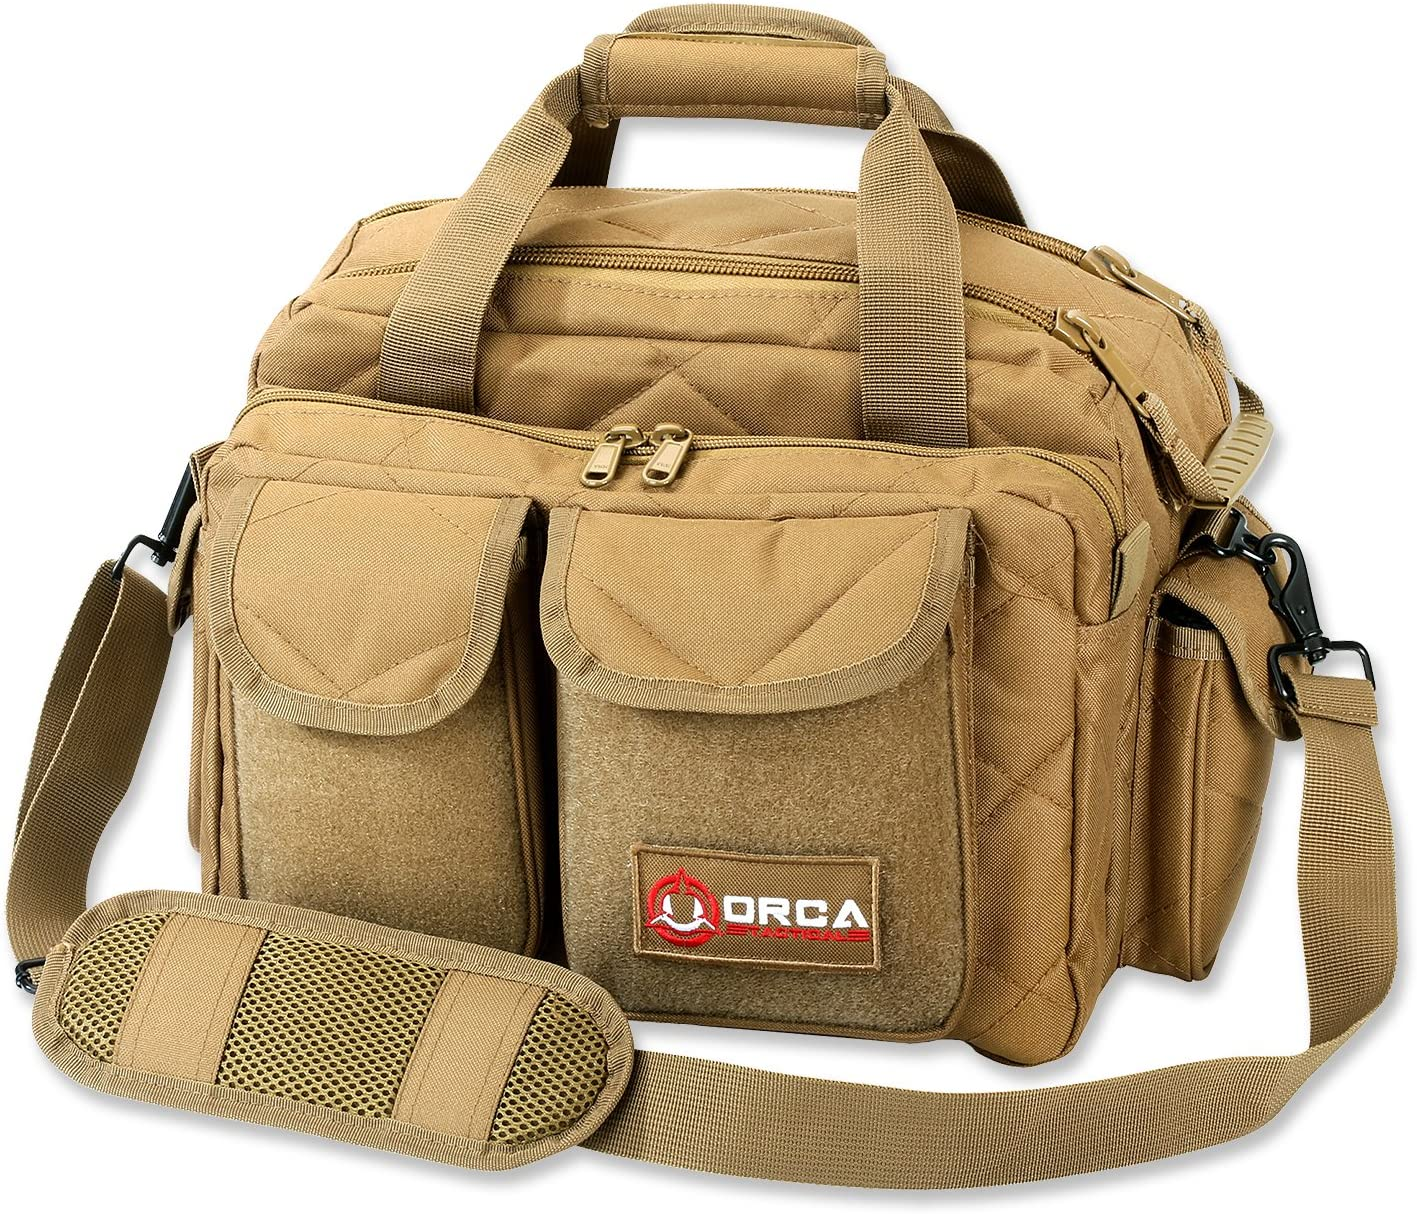 Image of a range bag, color brown, with padded shoulder strap and two front pockets velcro-closure type.